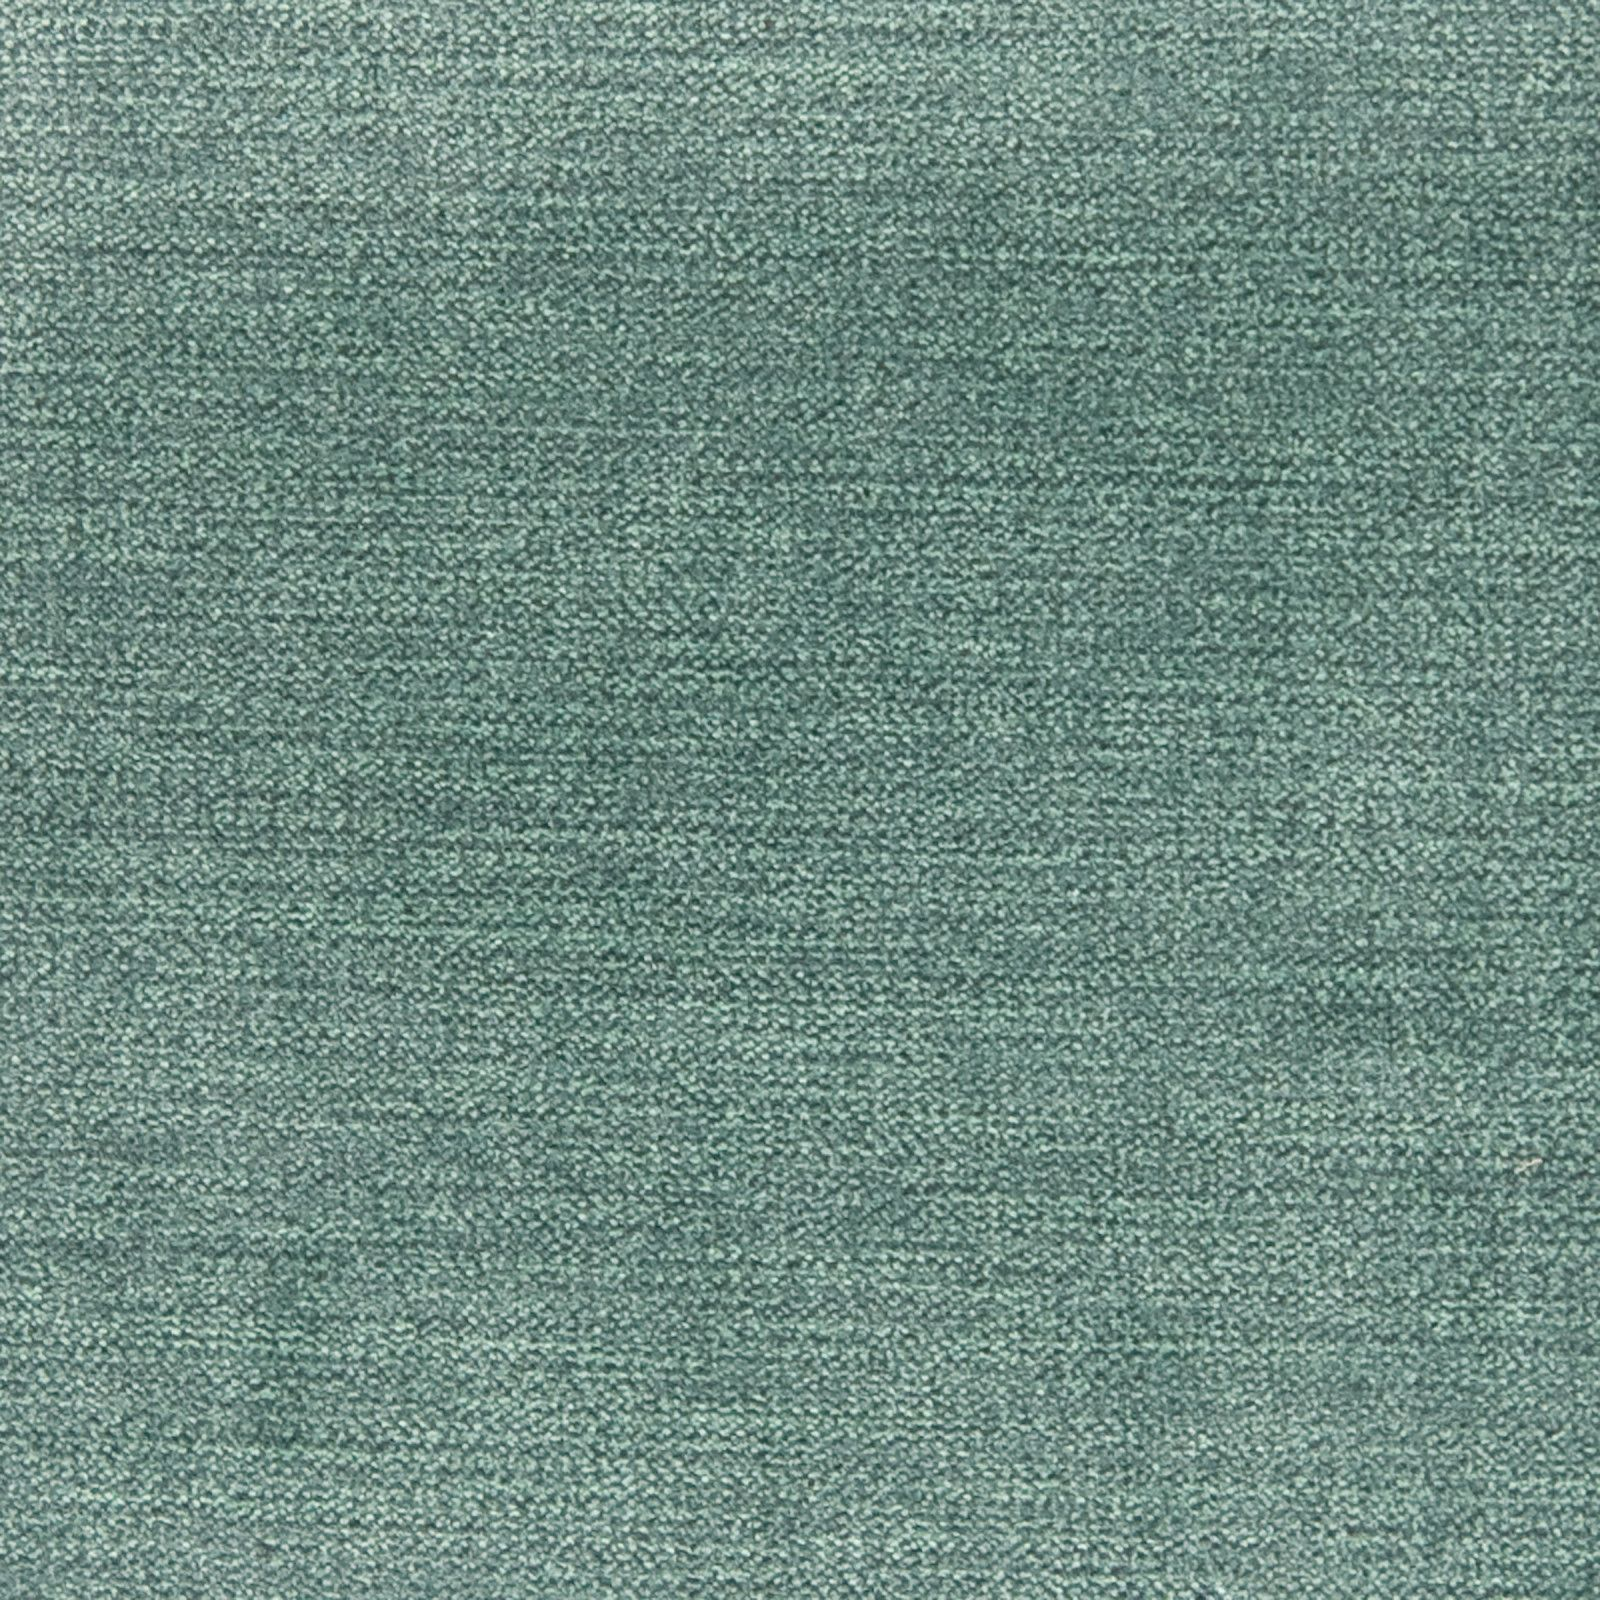 turquoise teal and blue solid velvet upholstery fabric